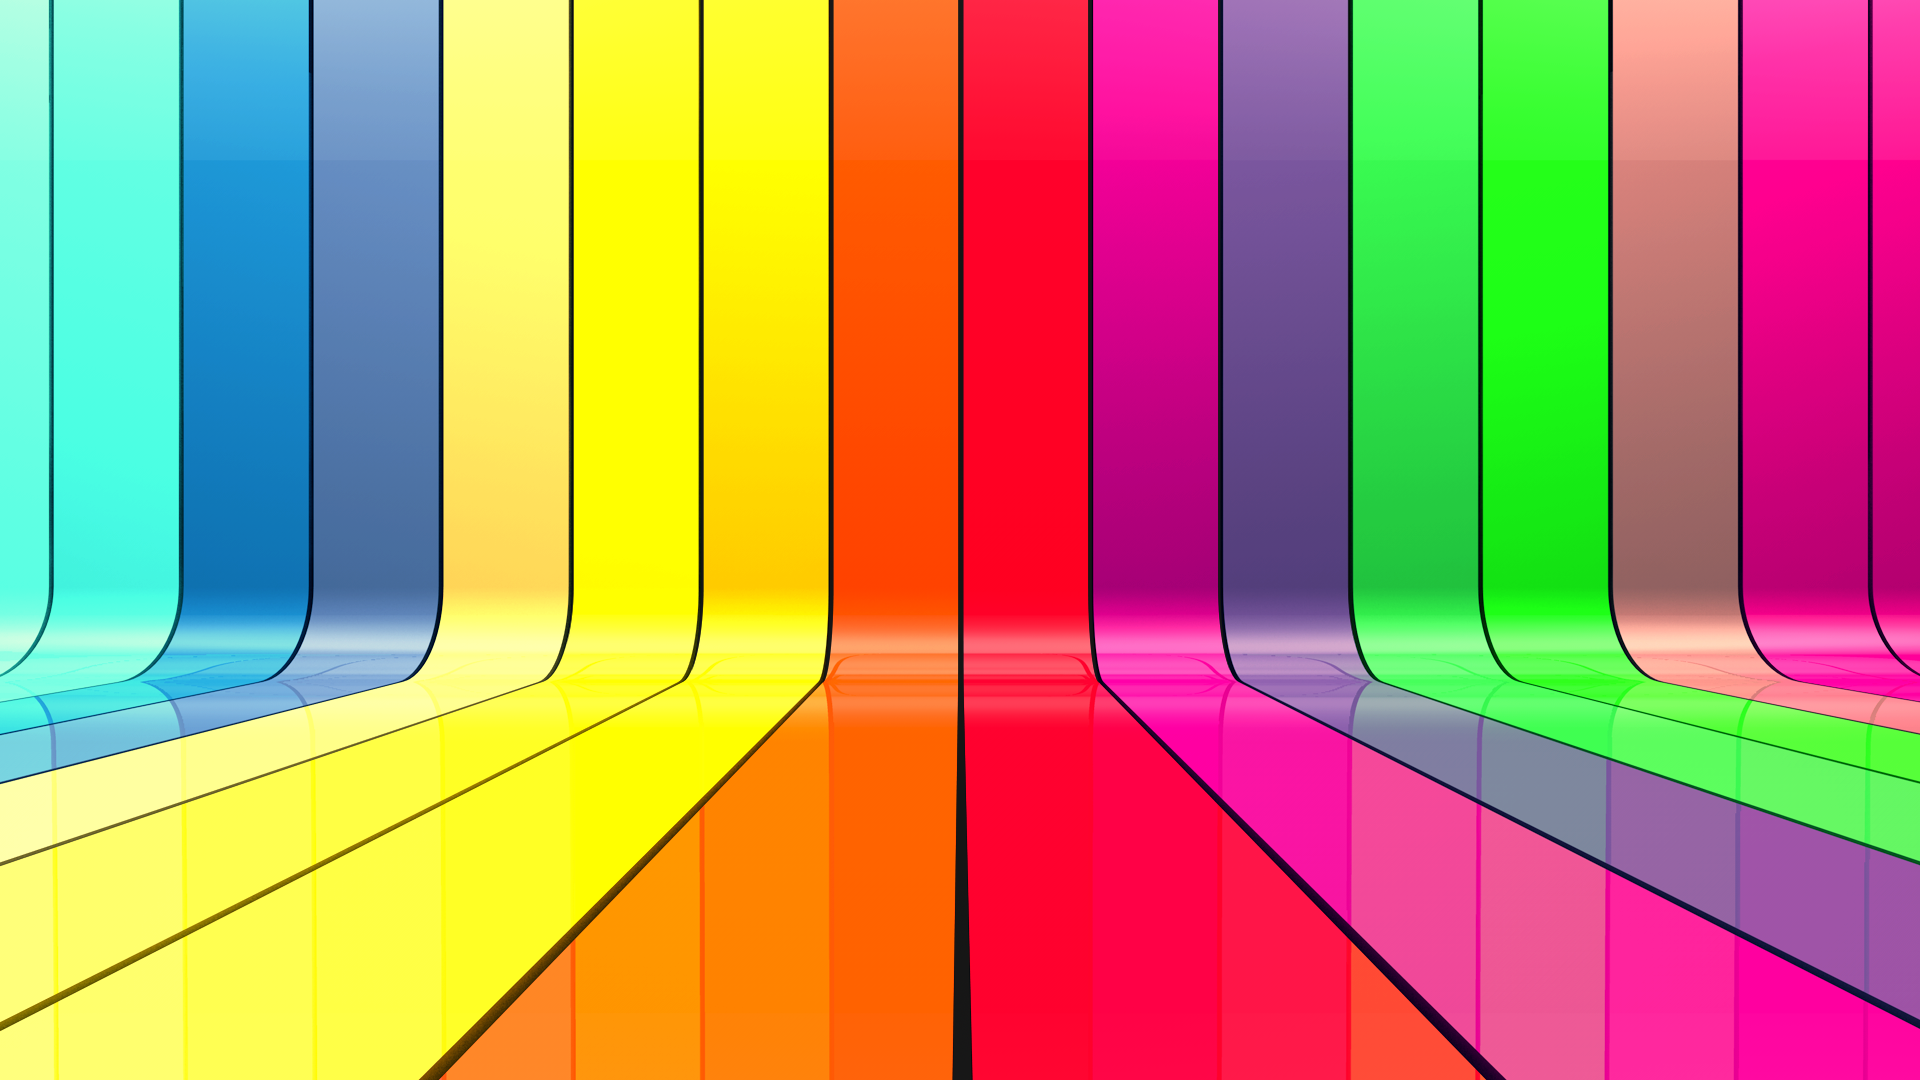 Red pink green yellow blue violet orange stripes background pictures 1920x1080